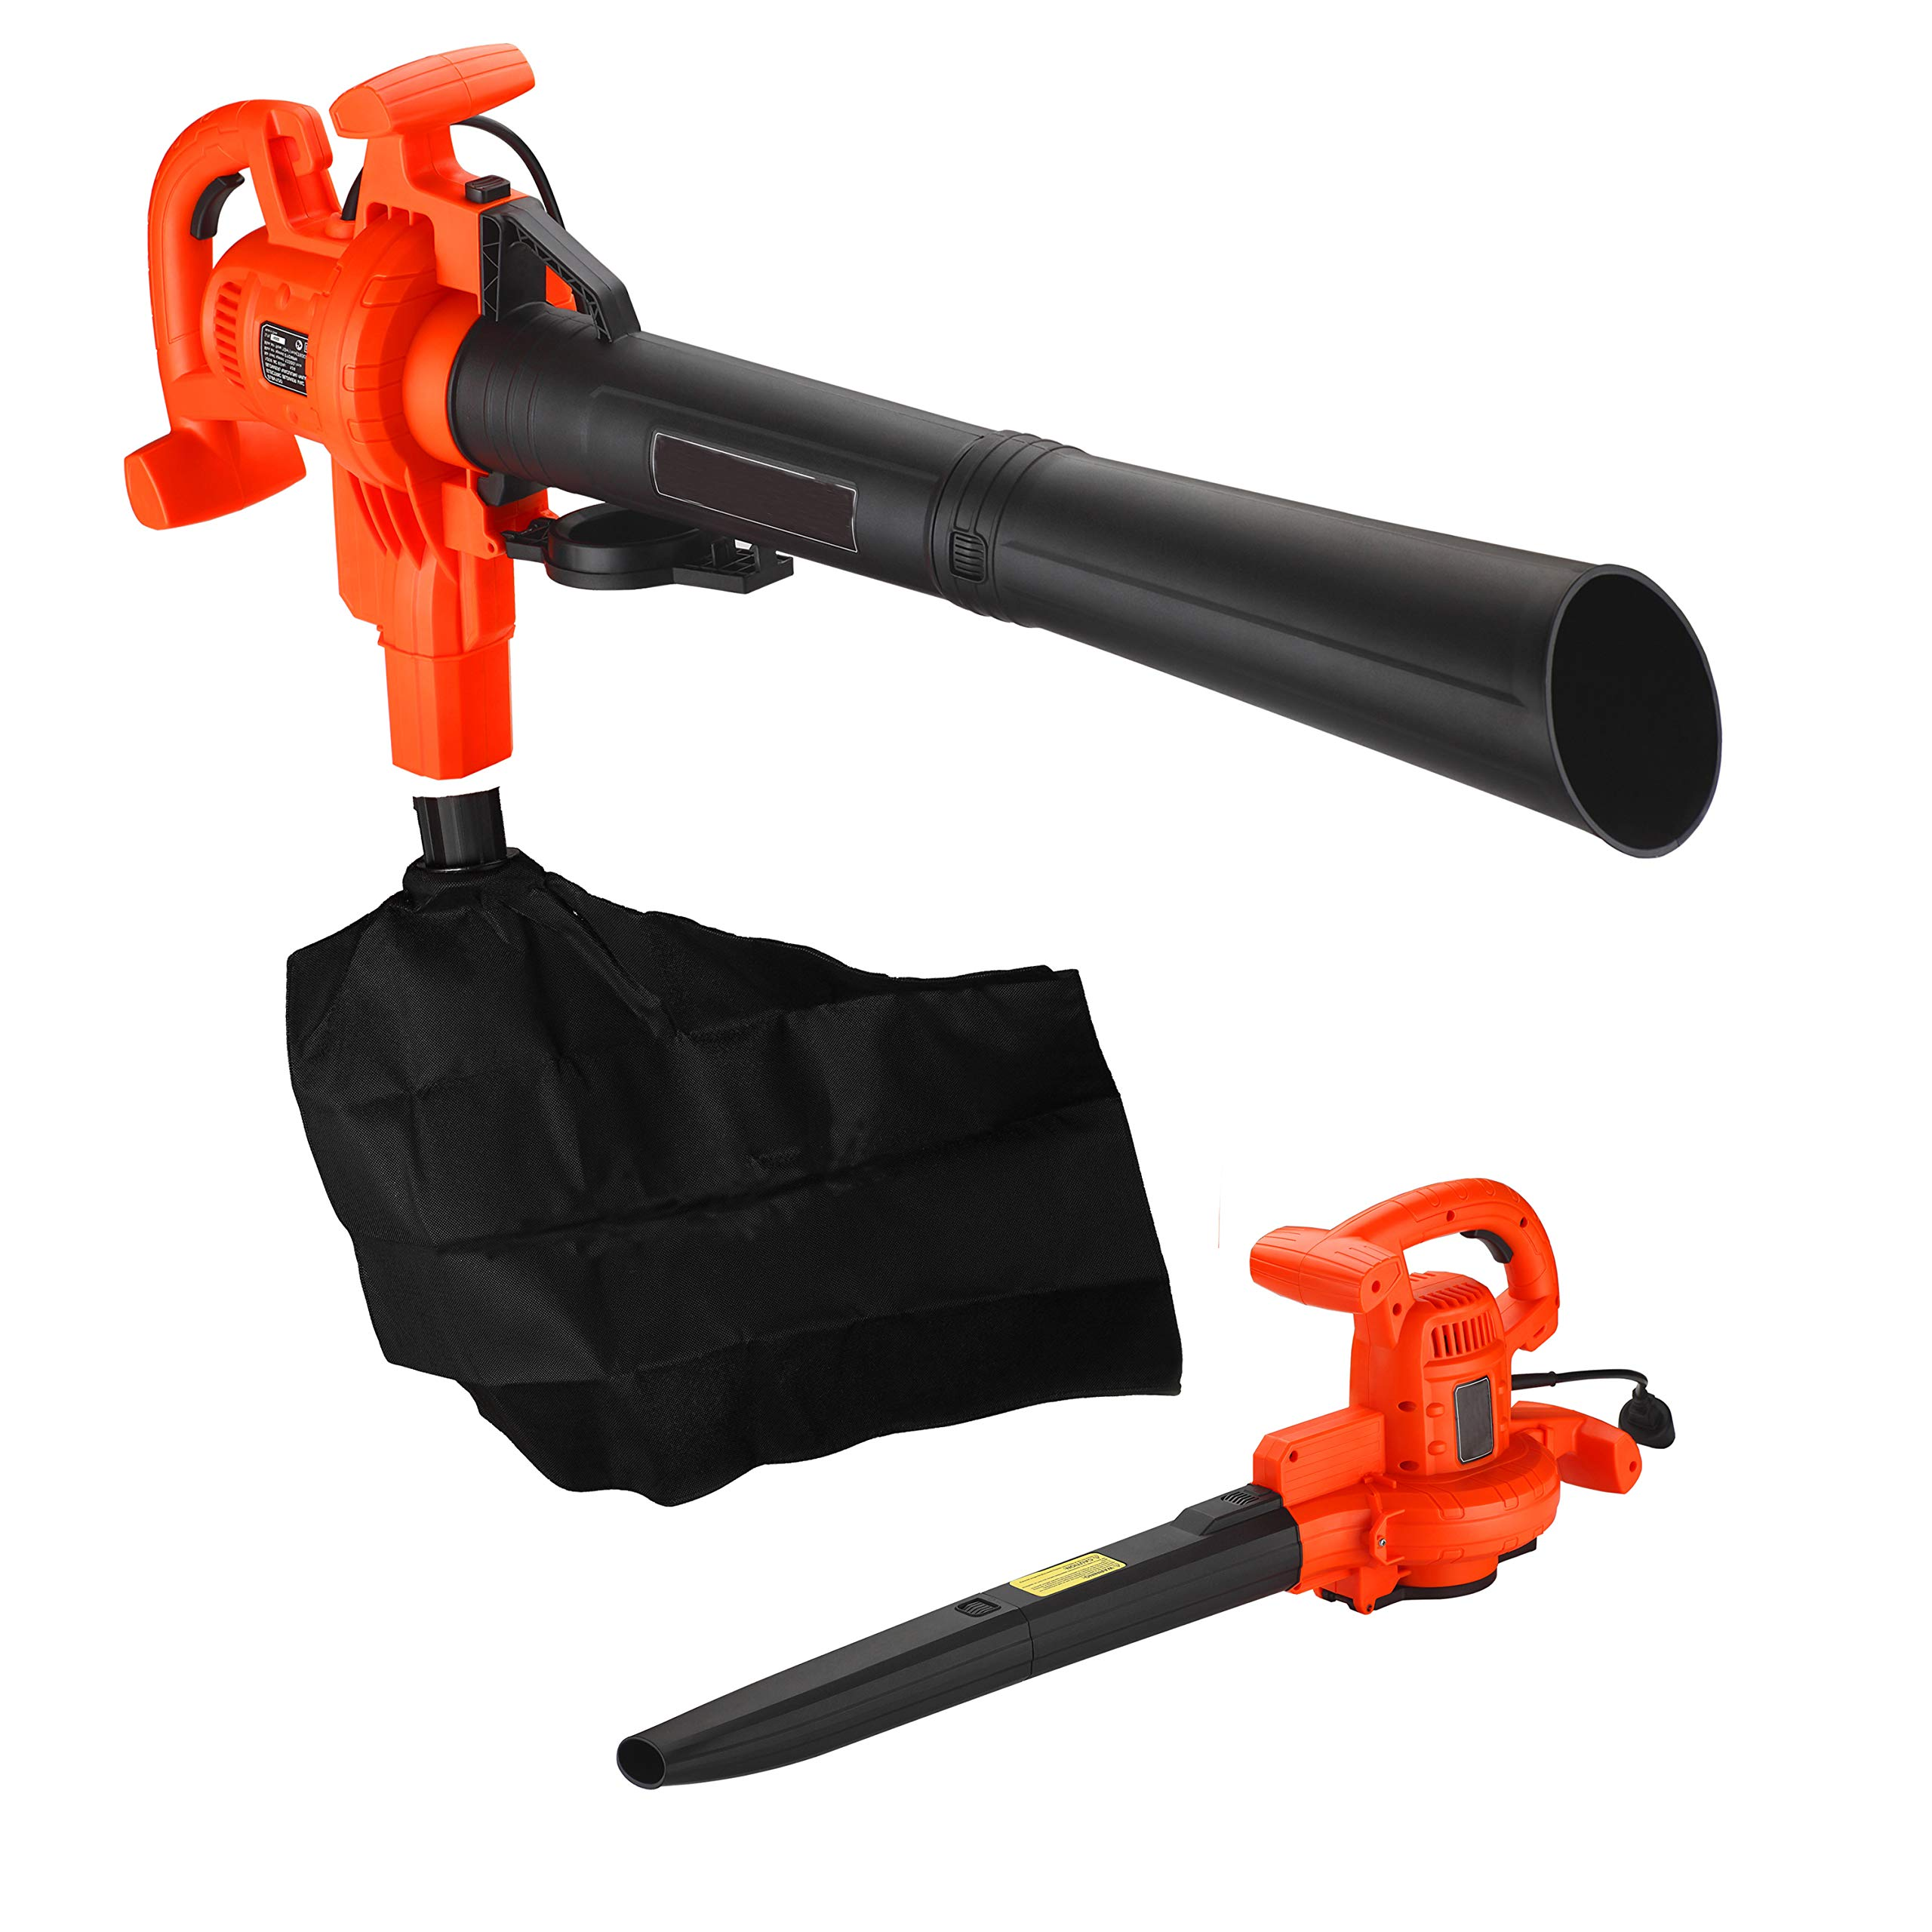 Hephaestus 210 MPH Electric Corded Leaf Blower Vacuum with 12 AMP Motor Variable Speed Control Included Mulch Bag